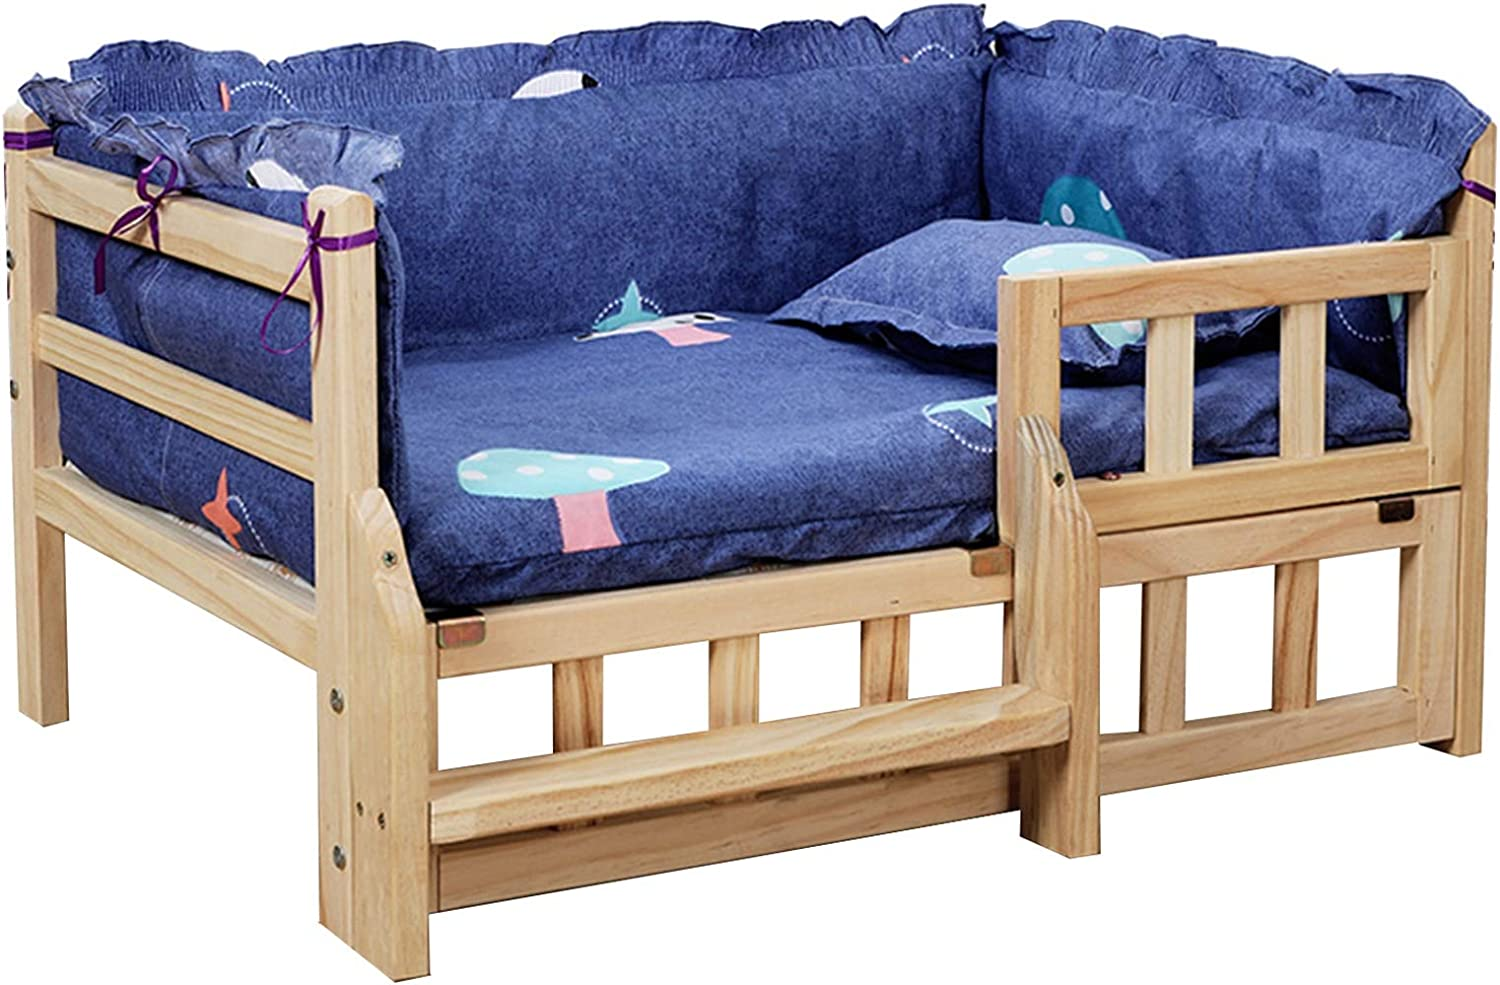 LXLA Wooden Today's only Elevated Dog Over item handling ☆ Bed P Washable with Mattress Removable